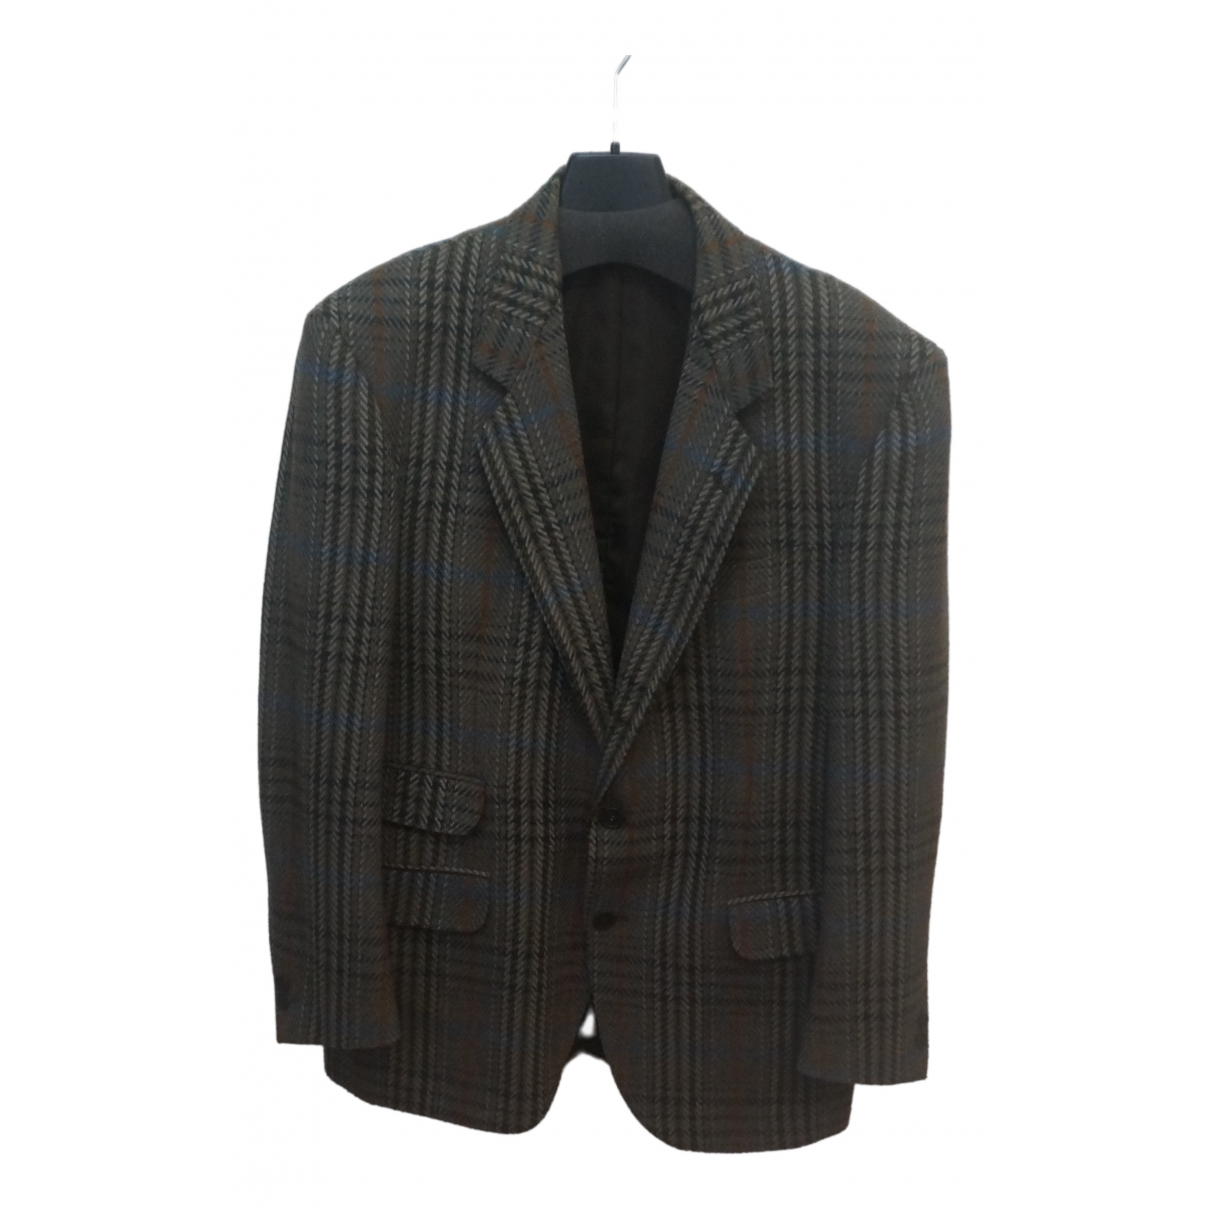 Valentino Garavani N Multicolour Wool jacket  for Men 48 IT